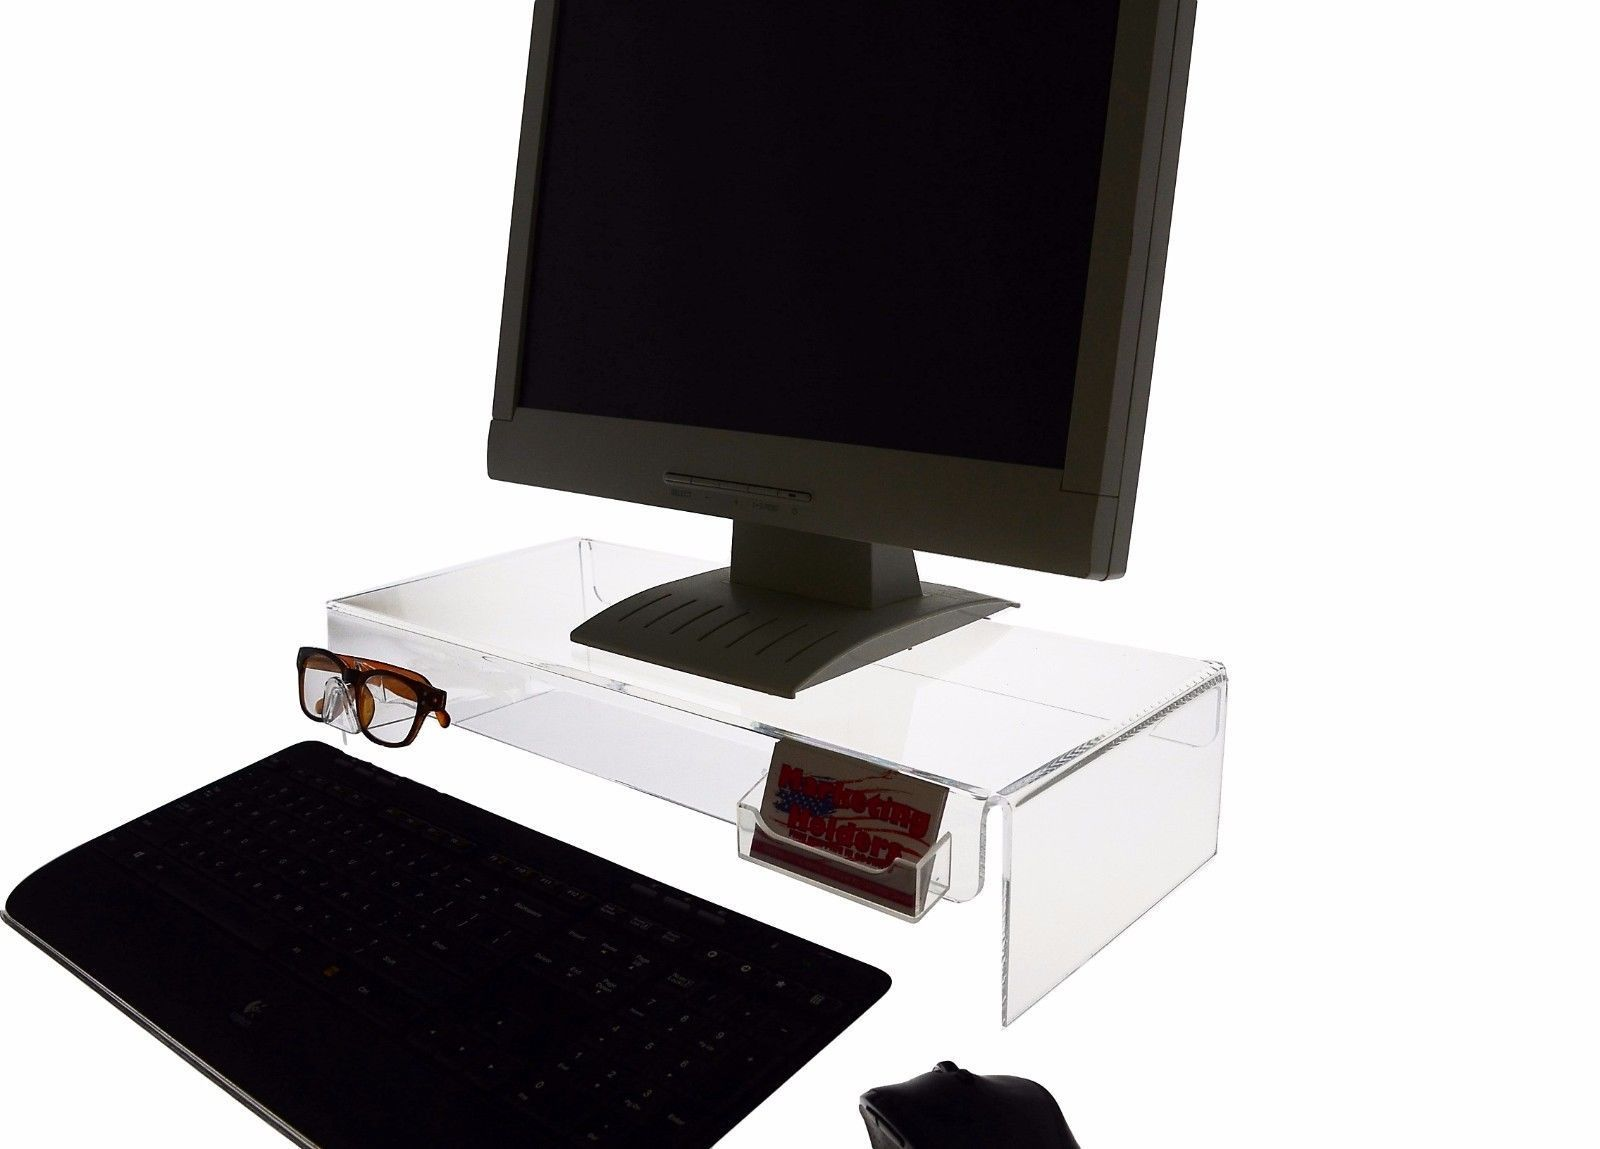 Pin by Smart Saver LLC on Business to Business | Pinterest | Desk ...